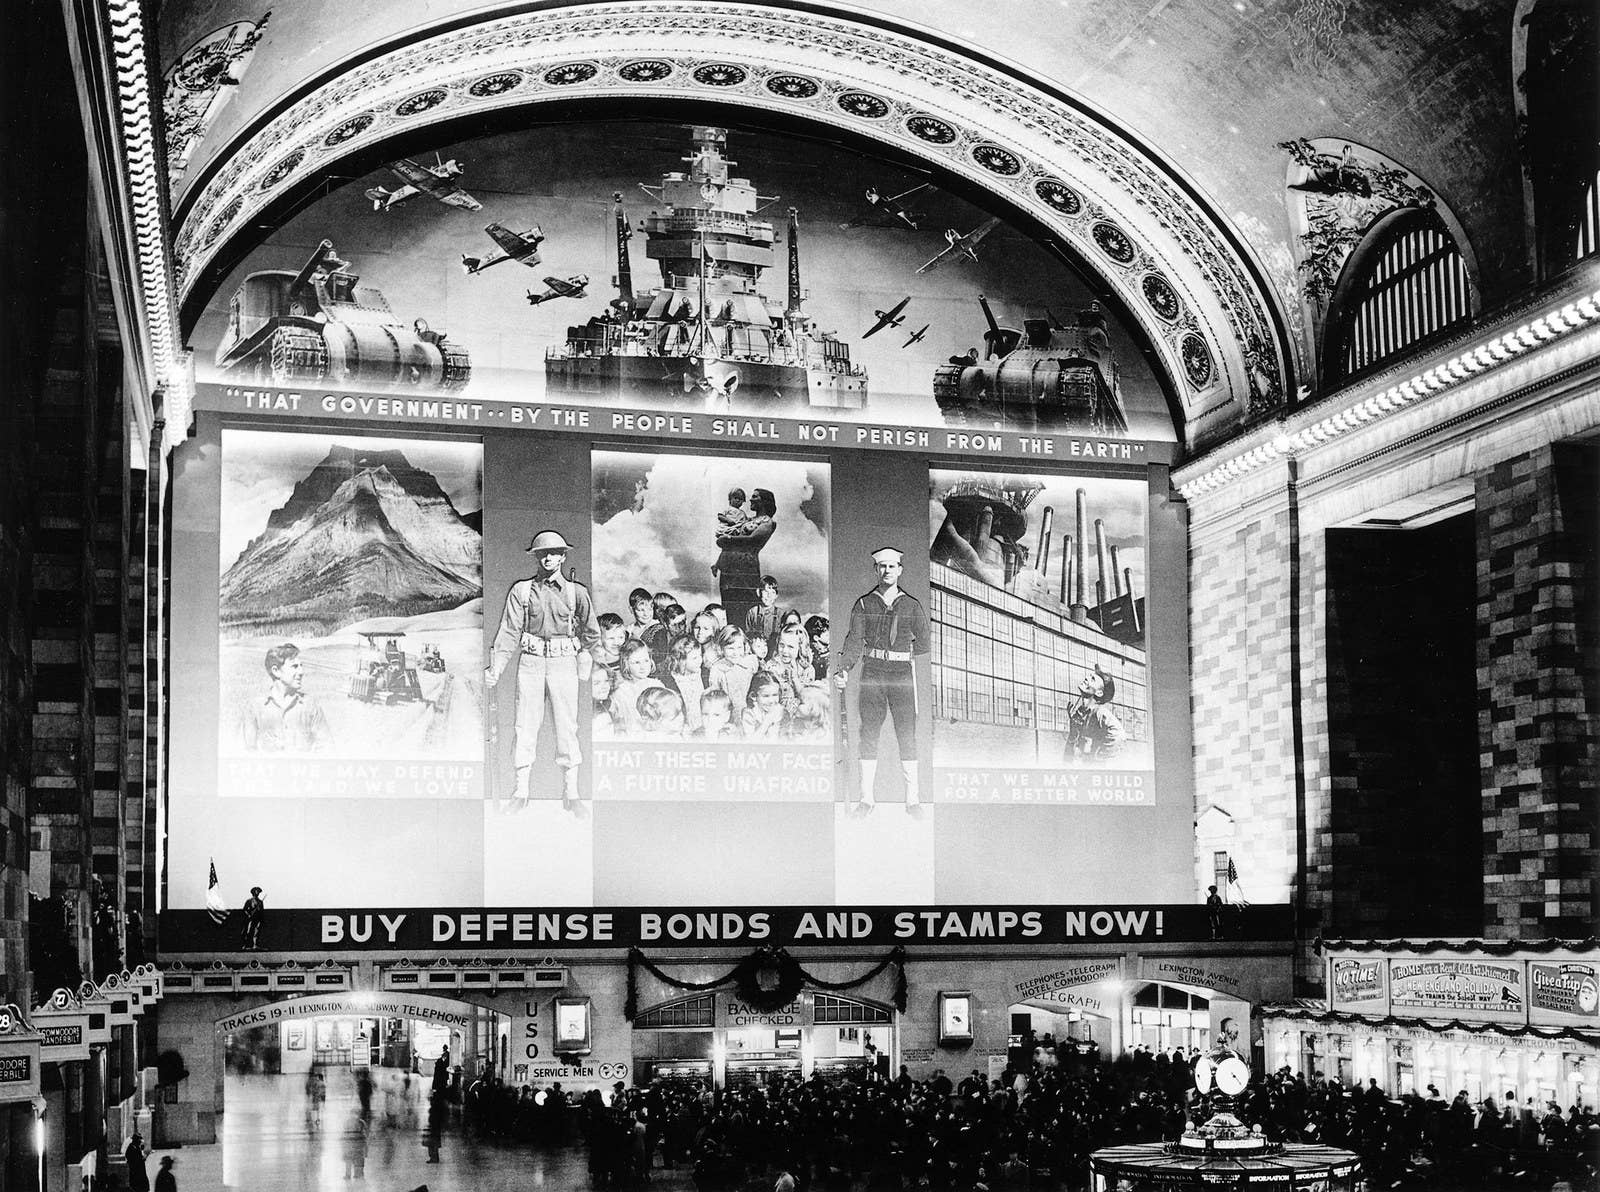 A large advertisement for defense bonds and stamps is hung in New York City's Grand Central Station, circa 1941.